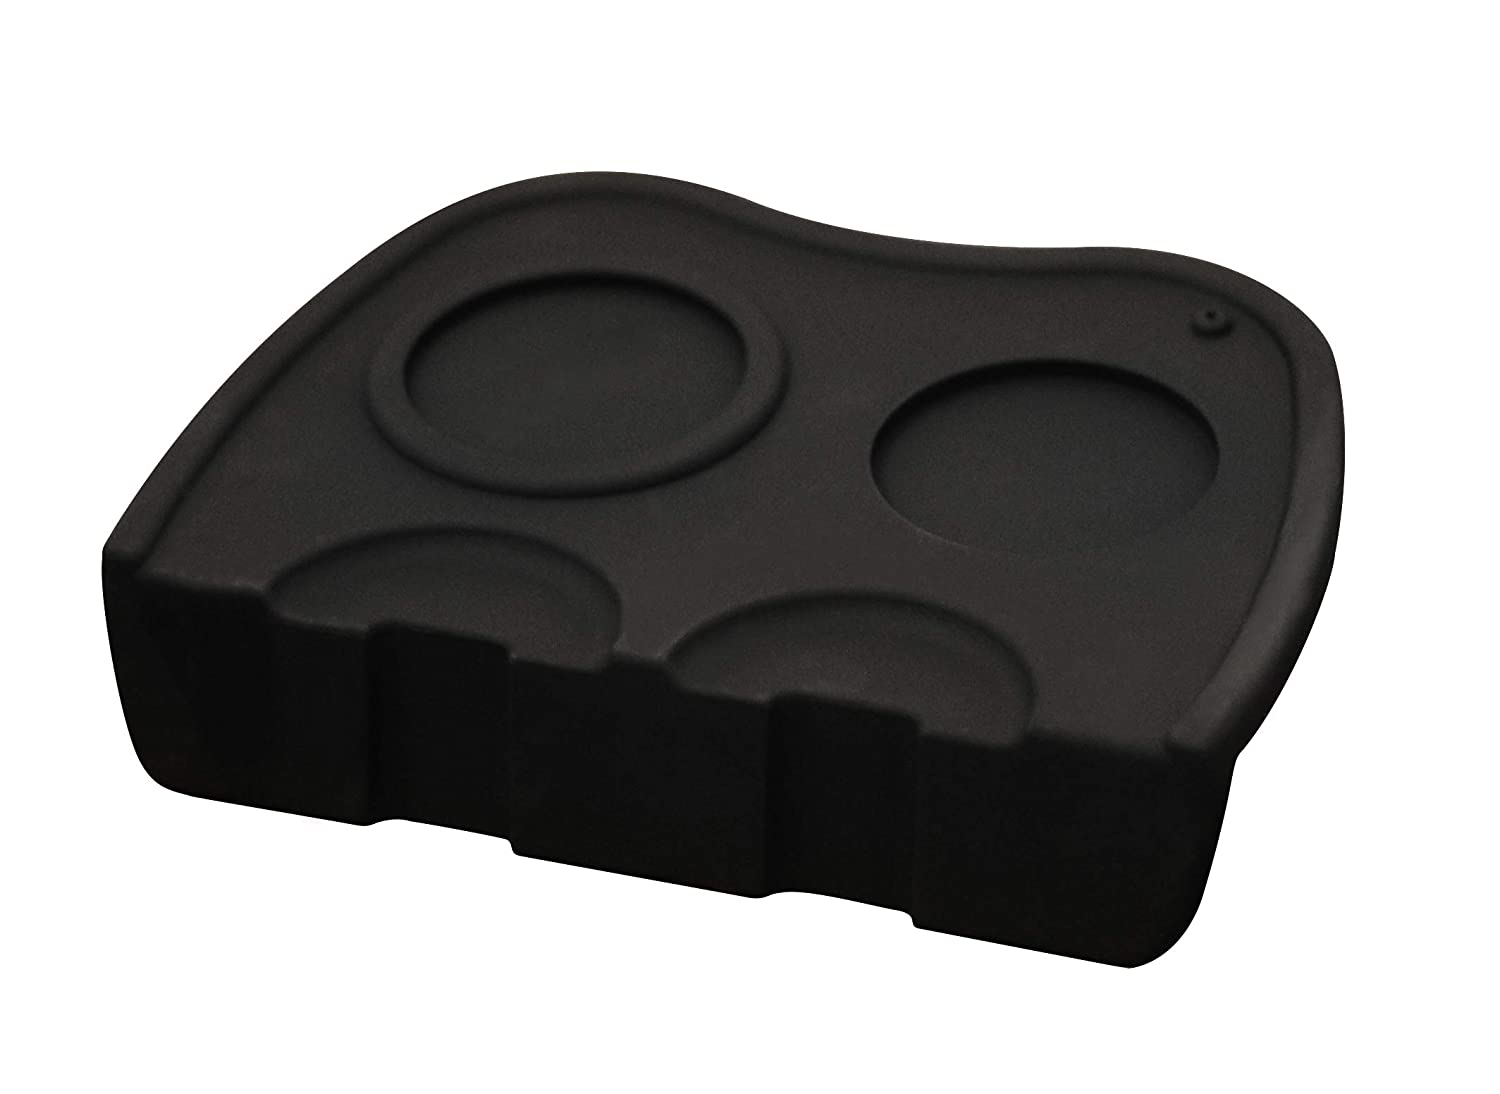 Deluxe Living Ltd - Silicone Espresso Coffee Tamper Stand Seat Mat Large Barista Tools for Tamping with The Portafilter Black - 5 Year Guarantee